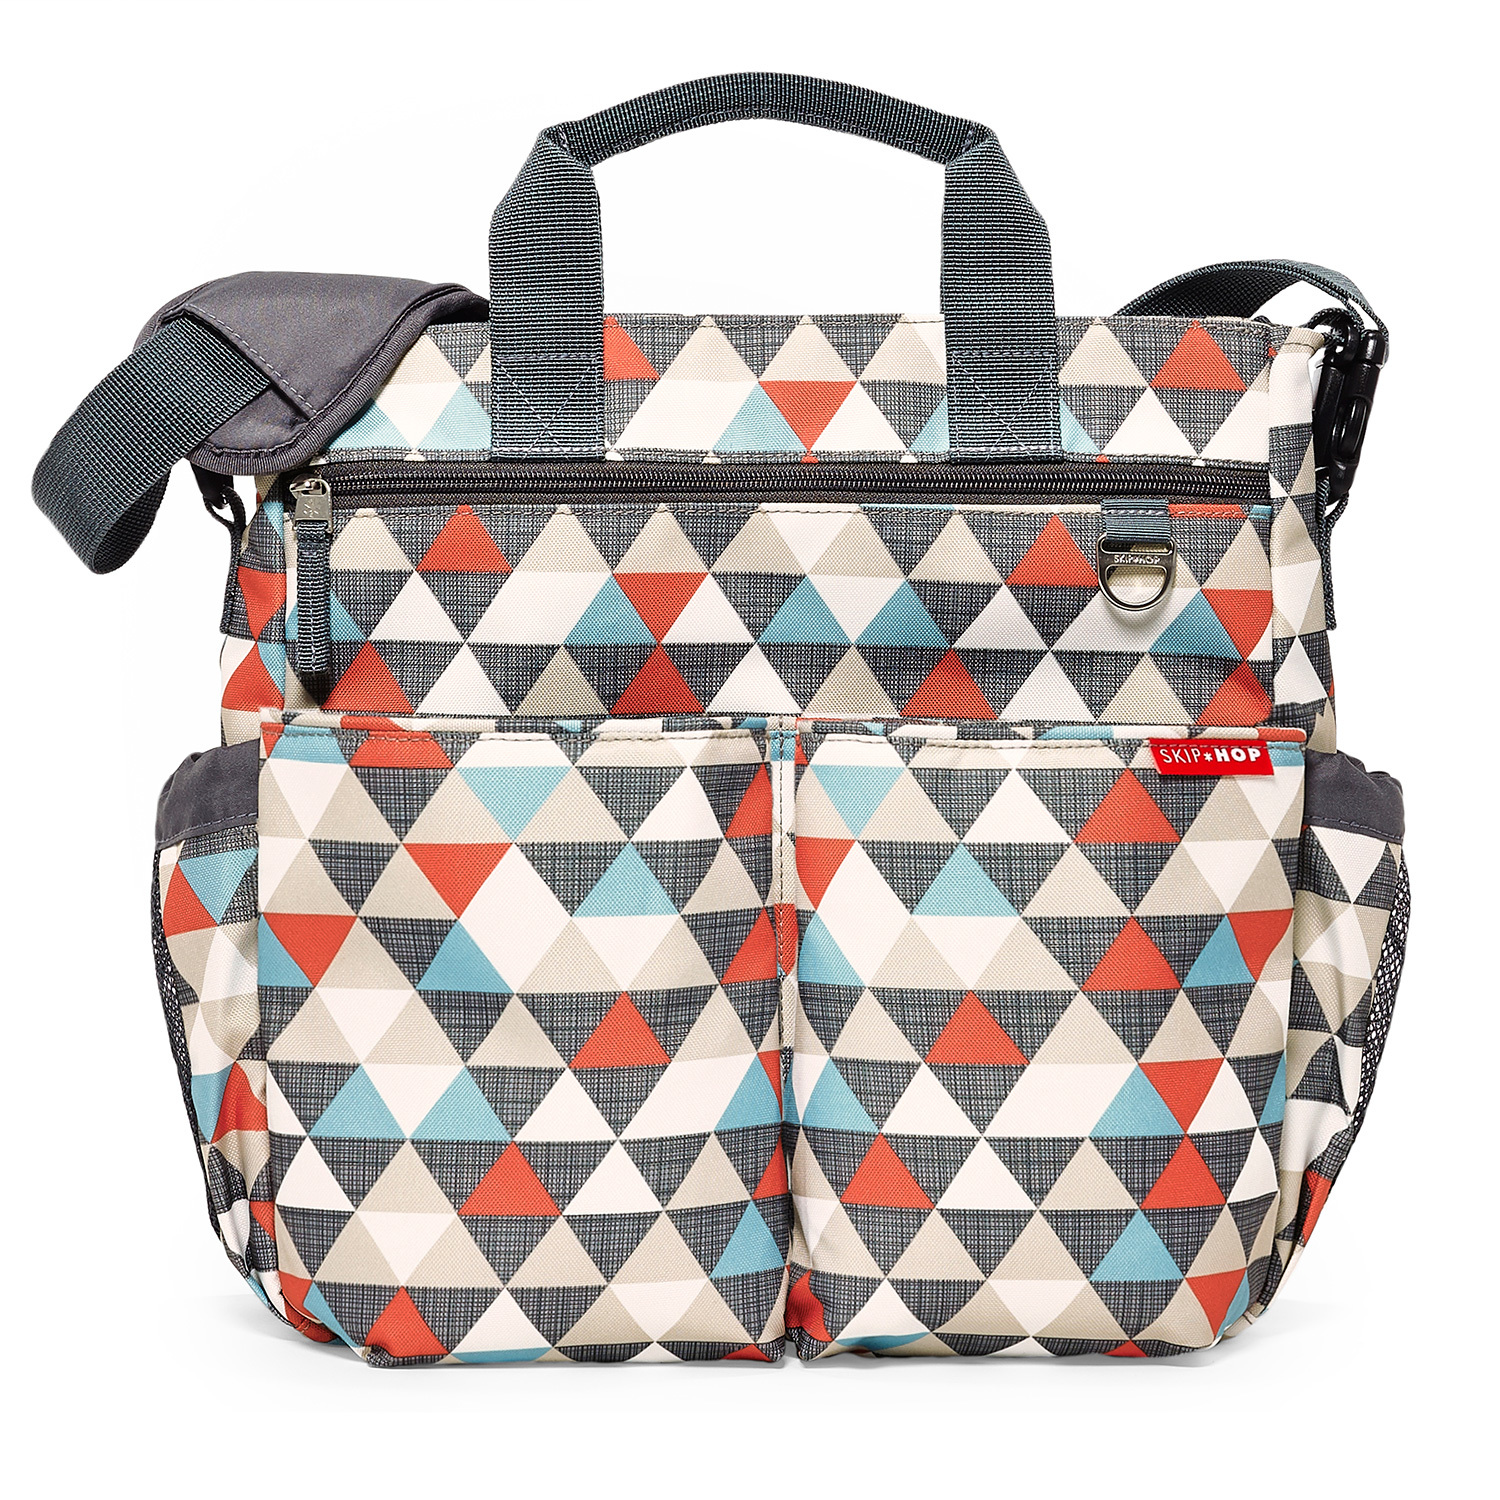 Skip Hop: Duo Signature Nappy Bag - Triangles image